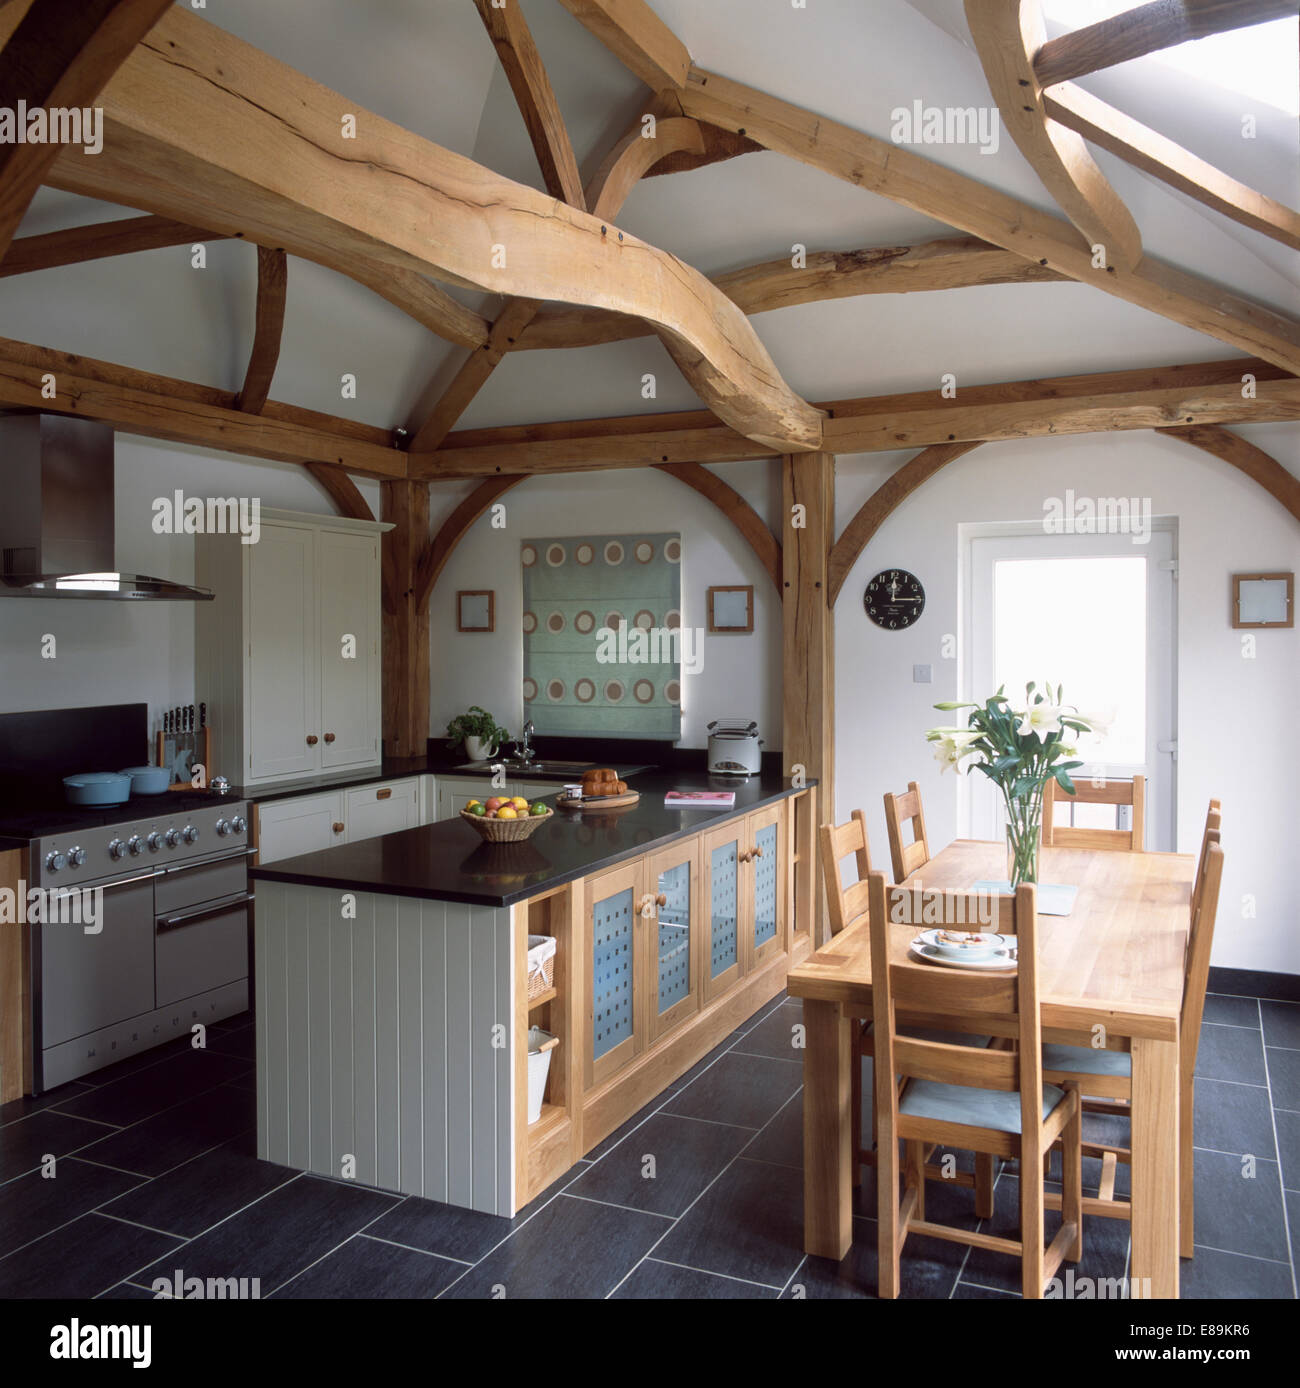 Large Wooden Beams And Island Unit In Barn Conversion Kitchen With Pale  Wood Table And Chairs